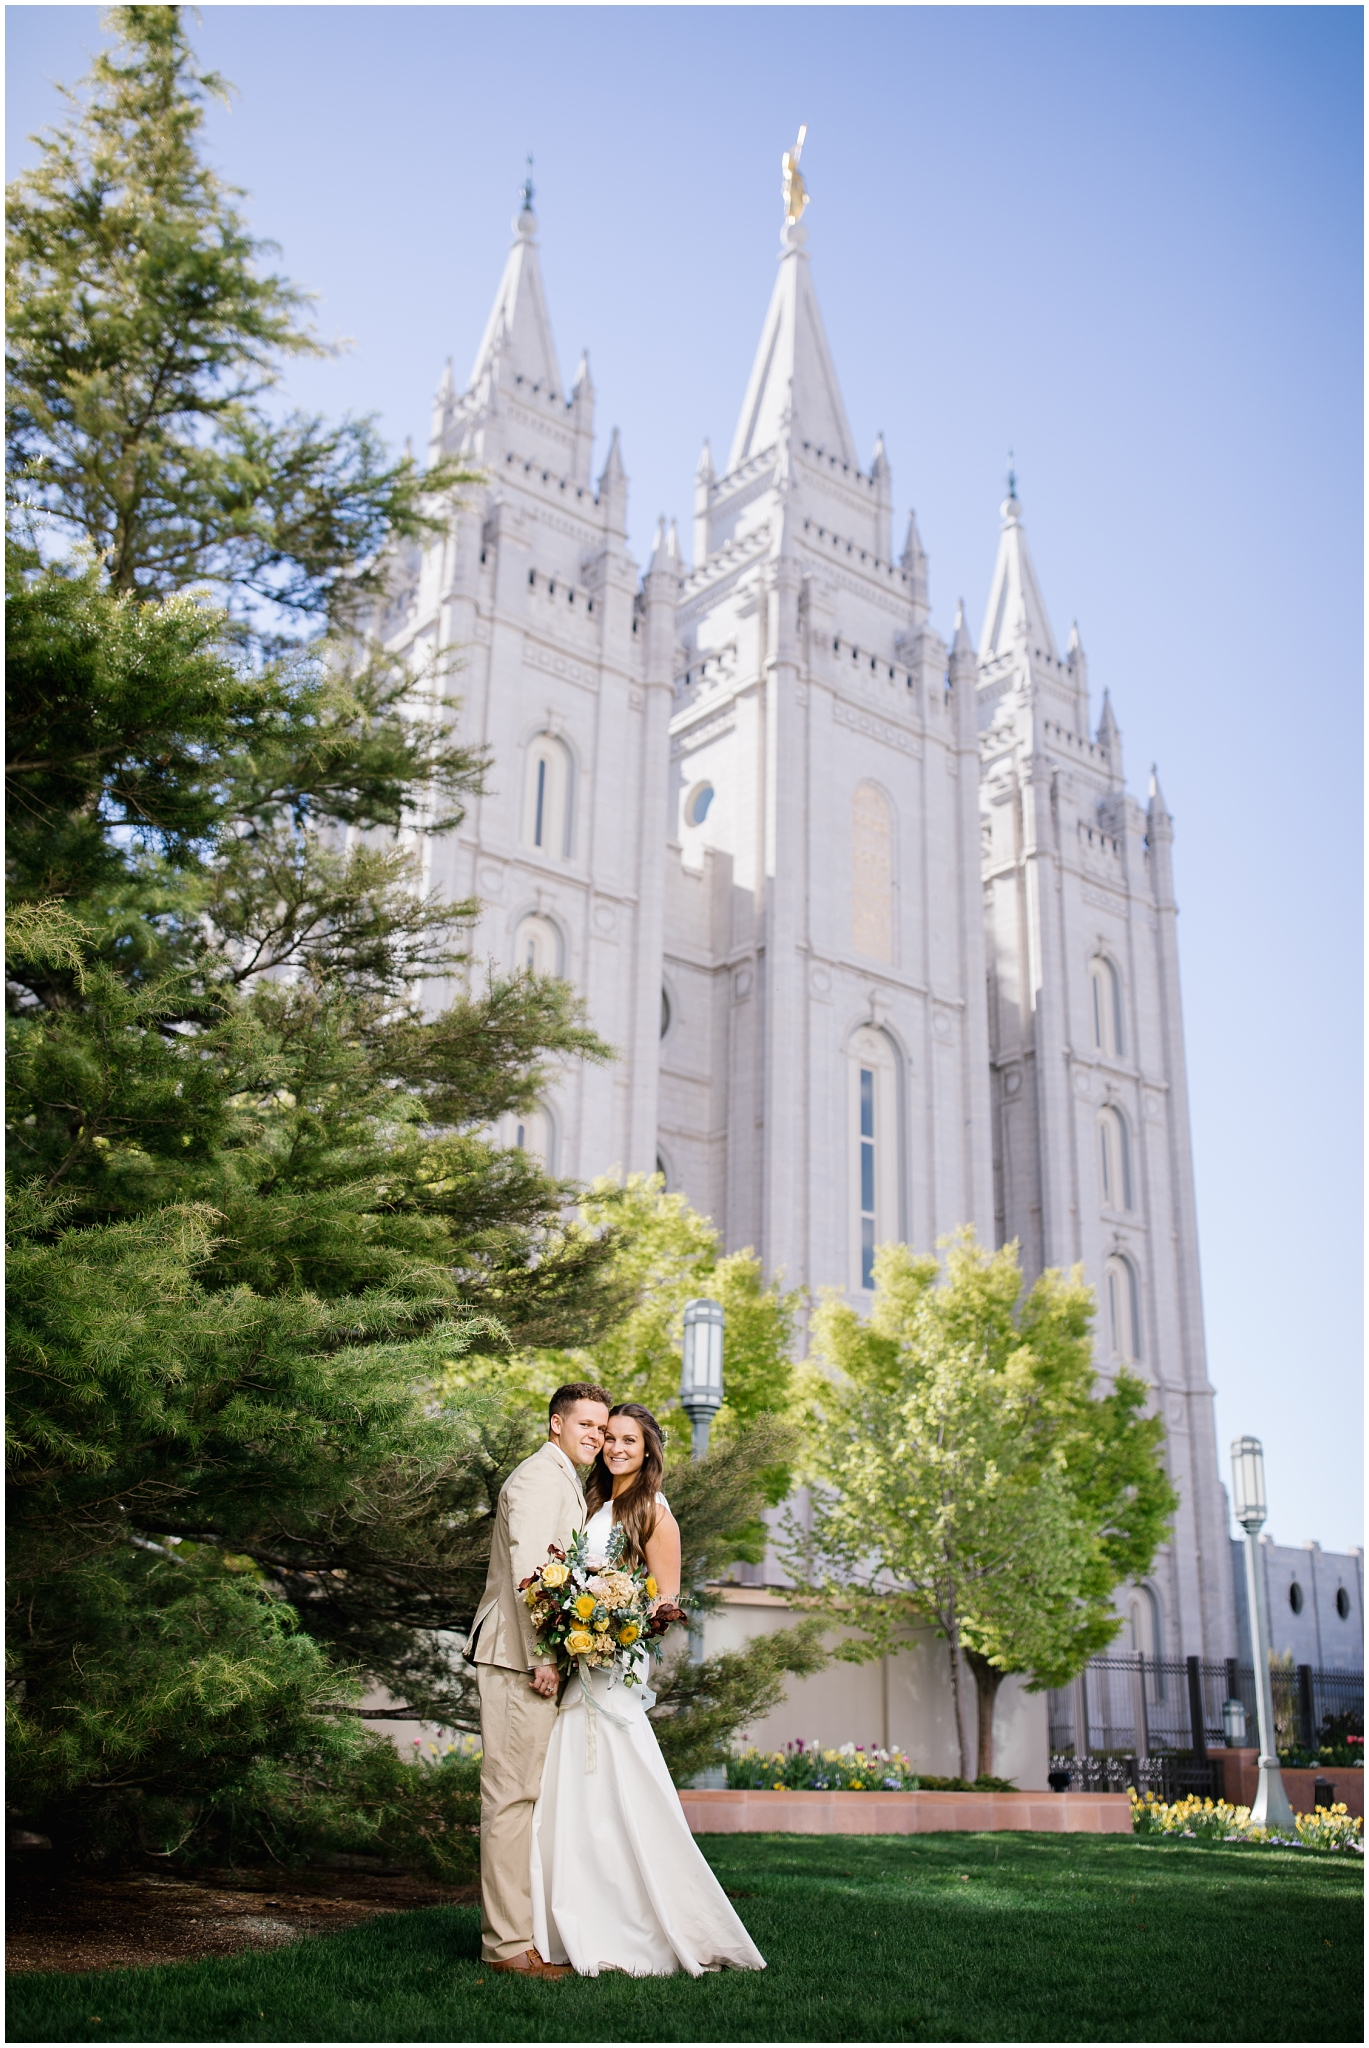 JC-Wedding-201_Lizzie-B-Imagery-Utah-Wedding-Photographer-Park-City-Salt-Lake-City-Temple-Joseph-Smith-Memorial-Building-Empire-Room.jpg